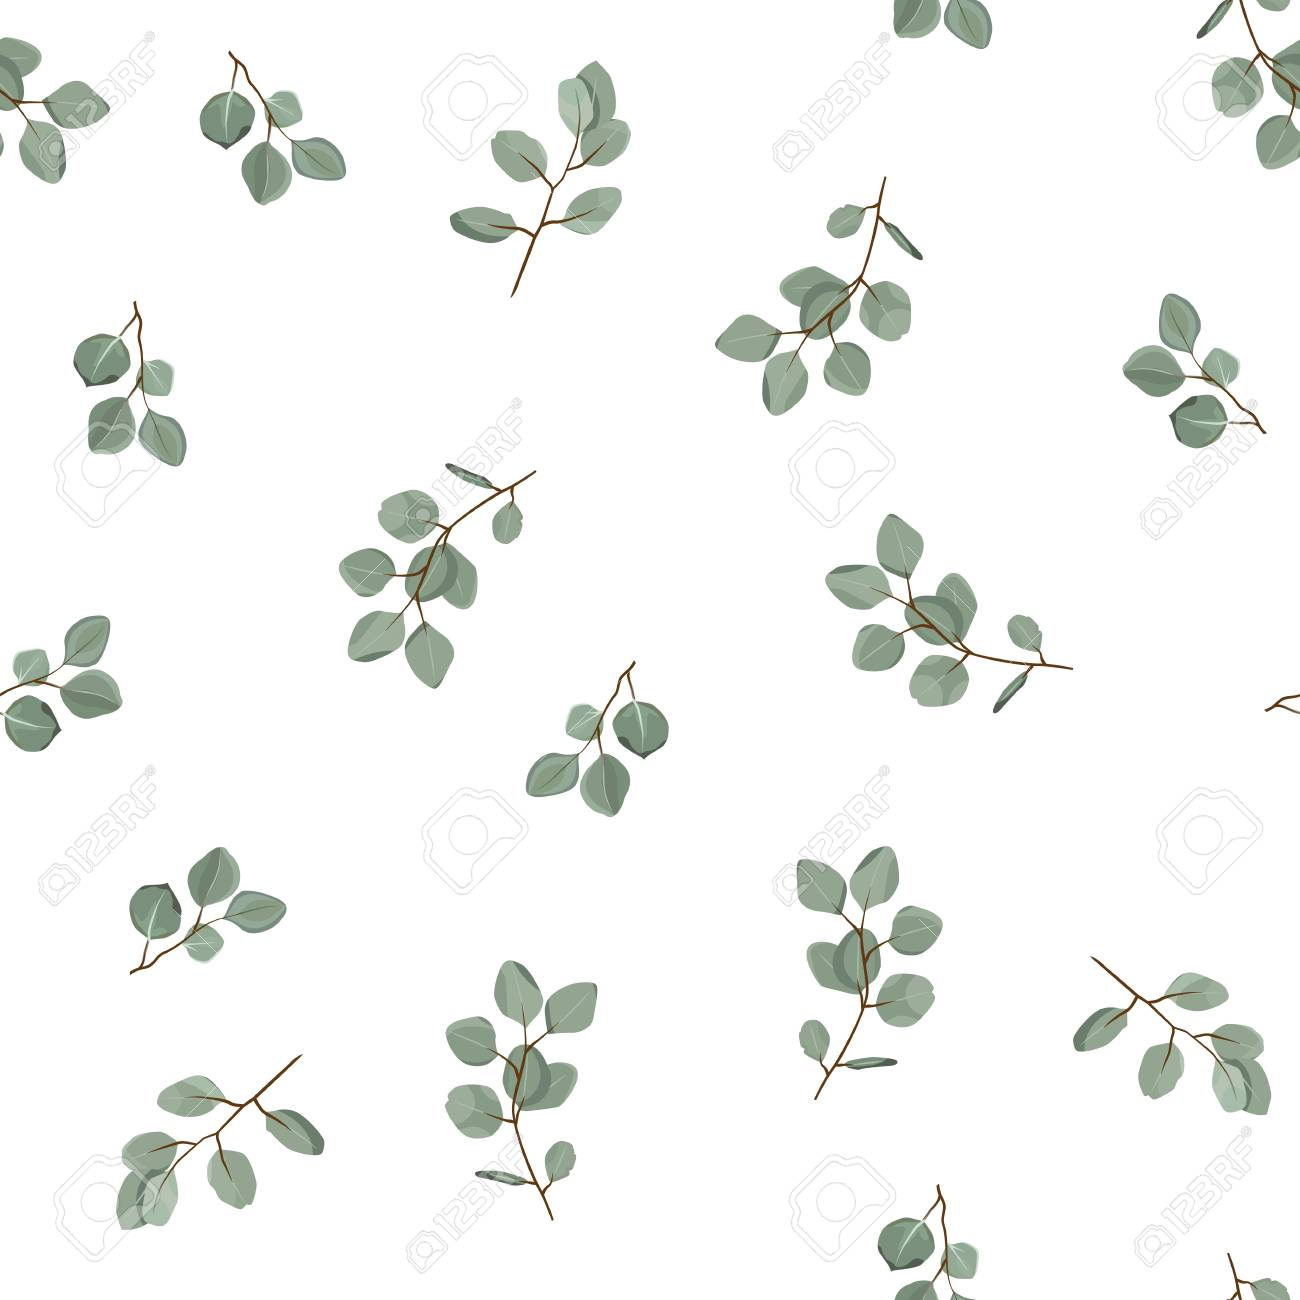 Floral seamless pattern. Plant texture for fabric, wrapping, wallpaper and paper. Decorative print. - 97574554